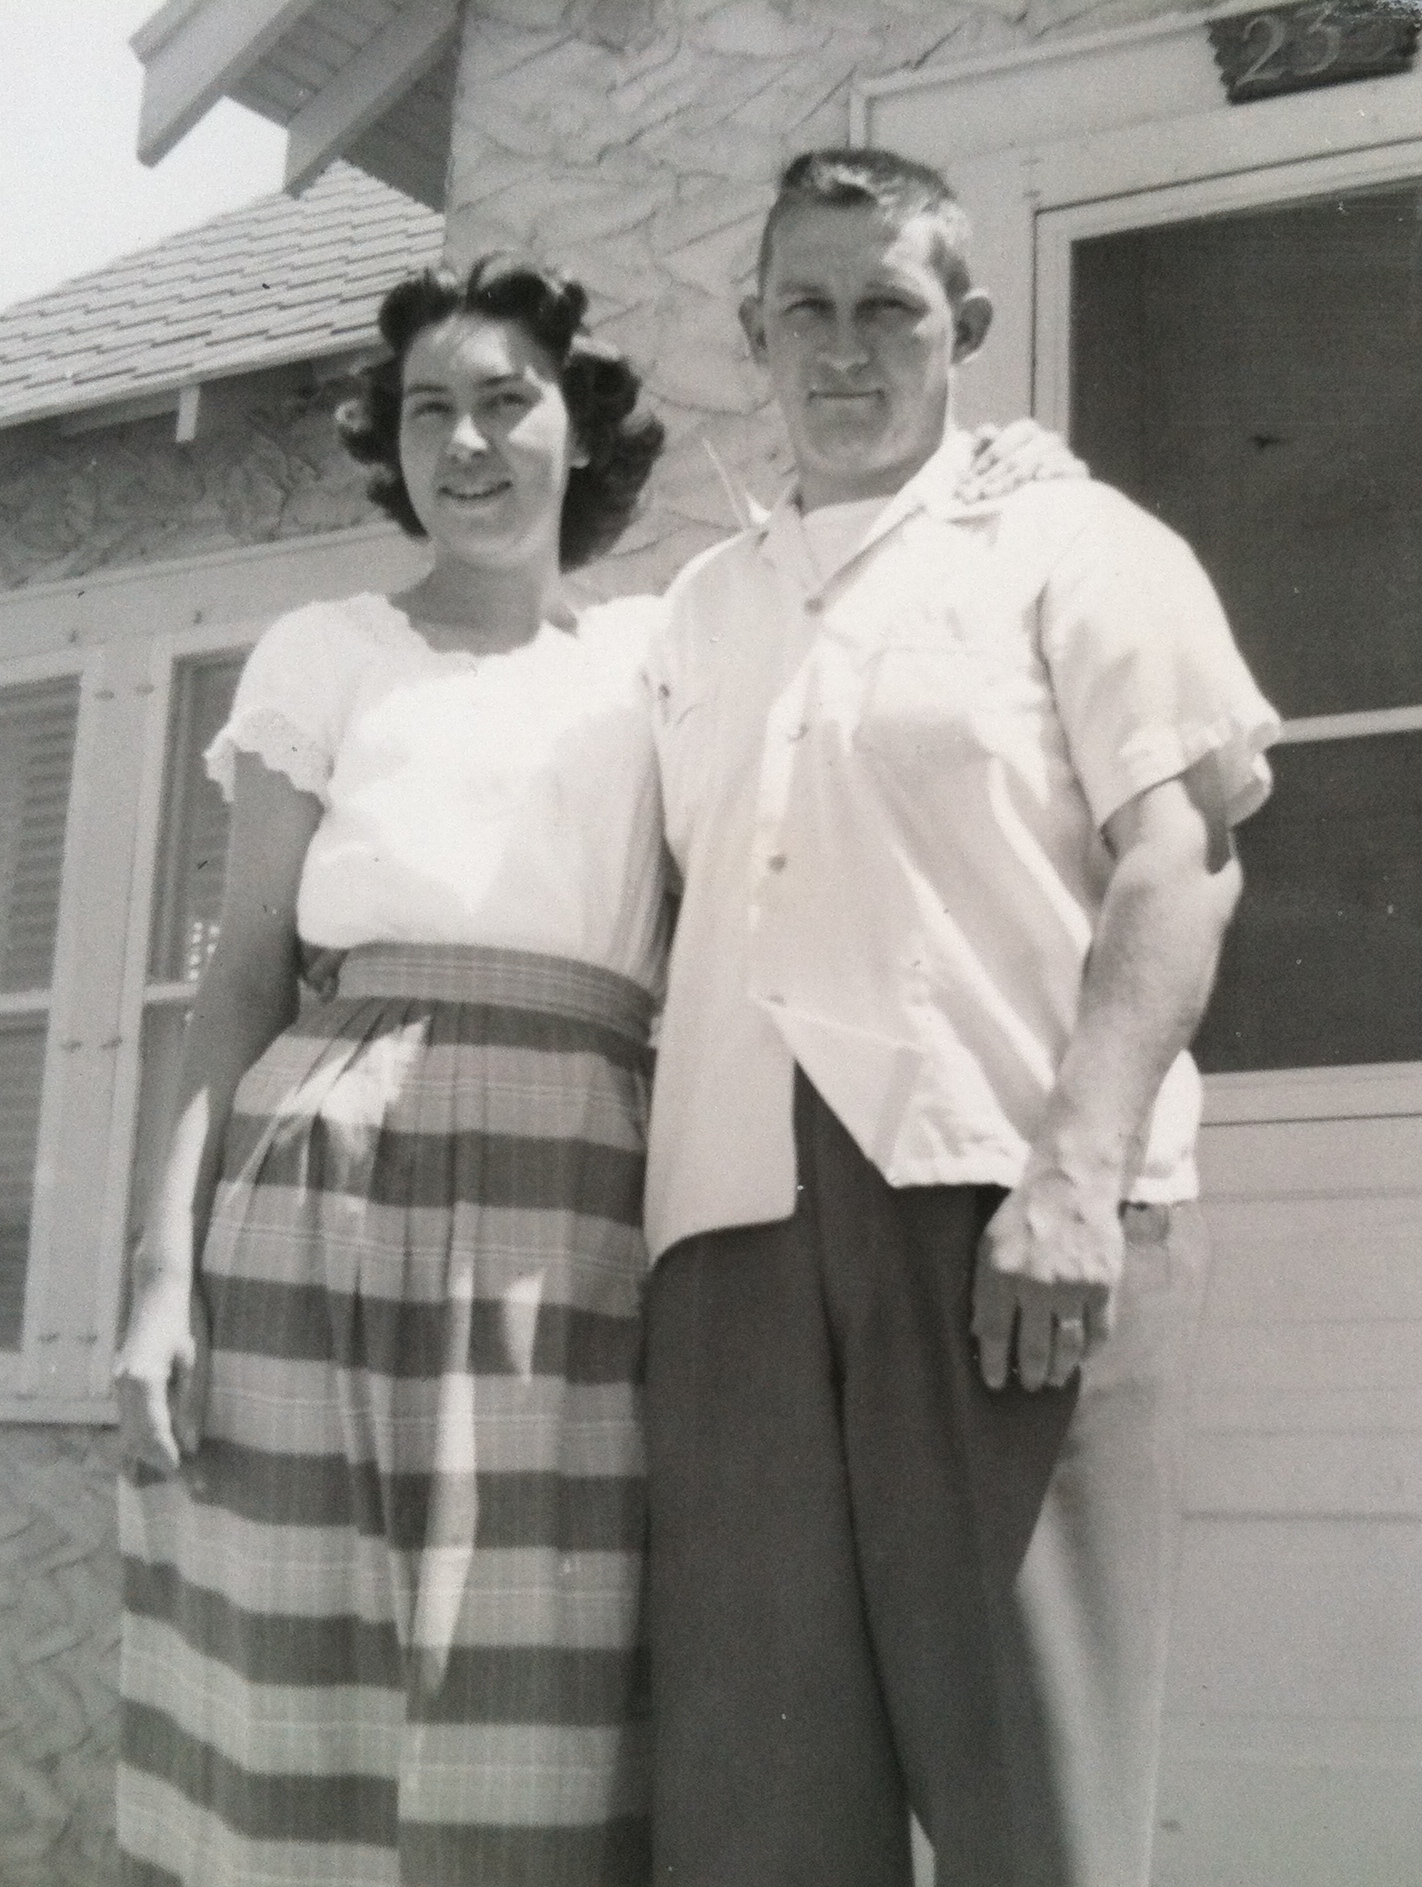 Mom and Dad around 1950.